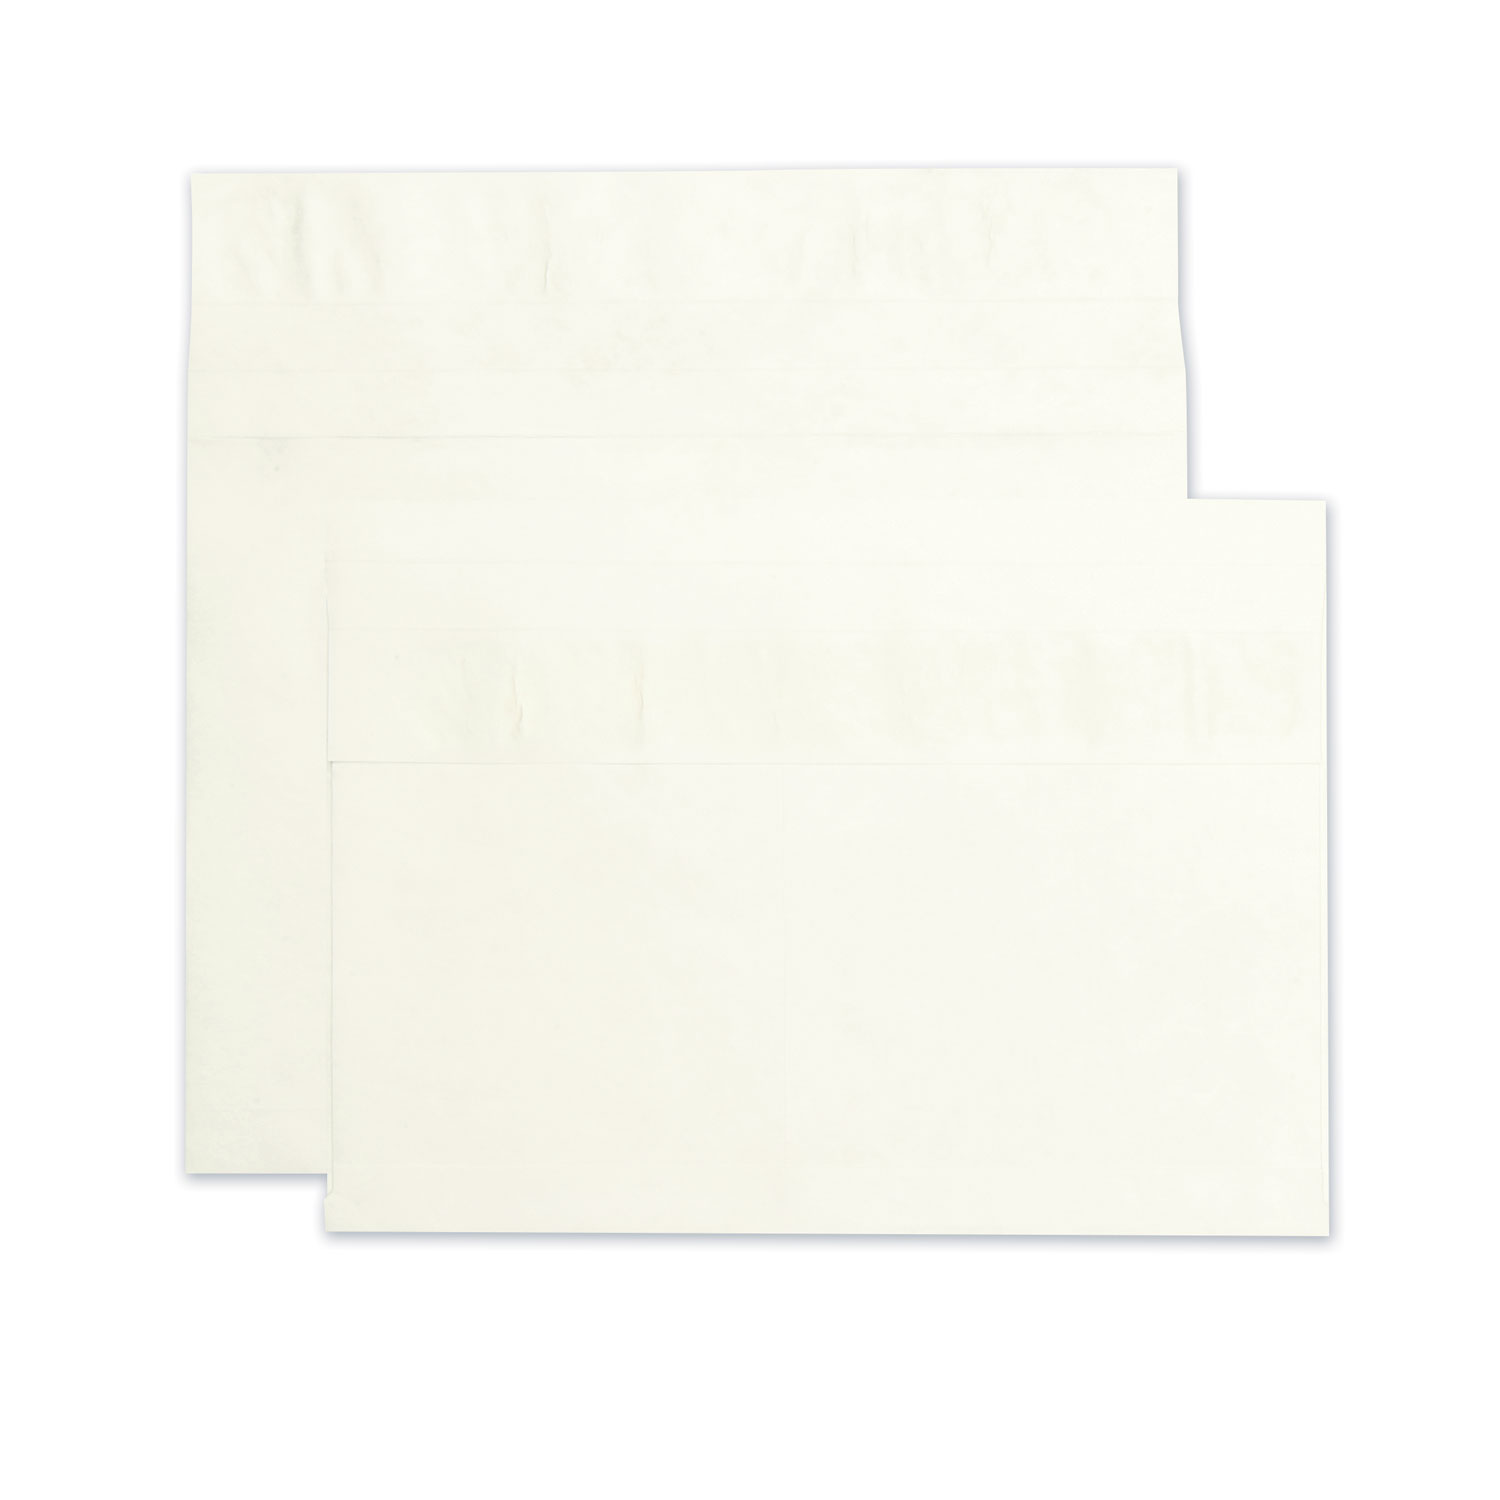 Open Side Expansion Mailers, DuPont Tyvek, #15, Cheese Blade Flap, Redi-Strip Closure, 10 x 15, White, 100/Carton